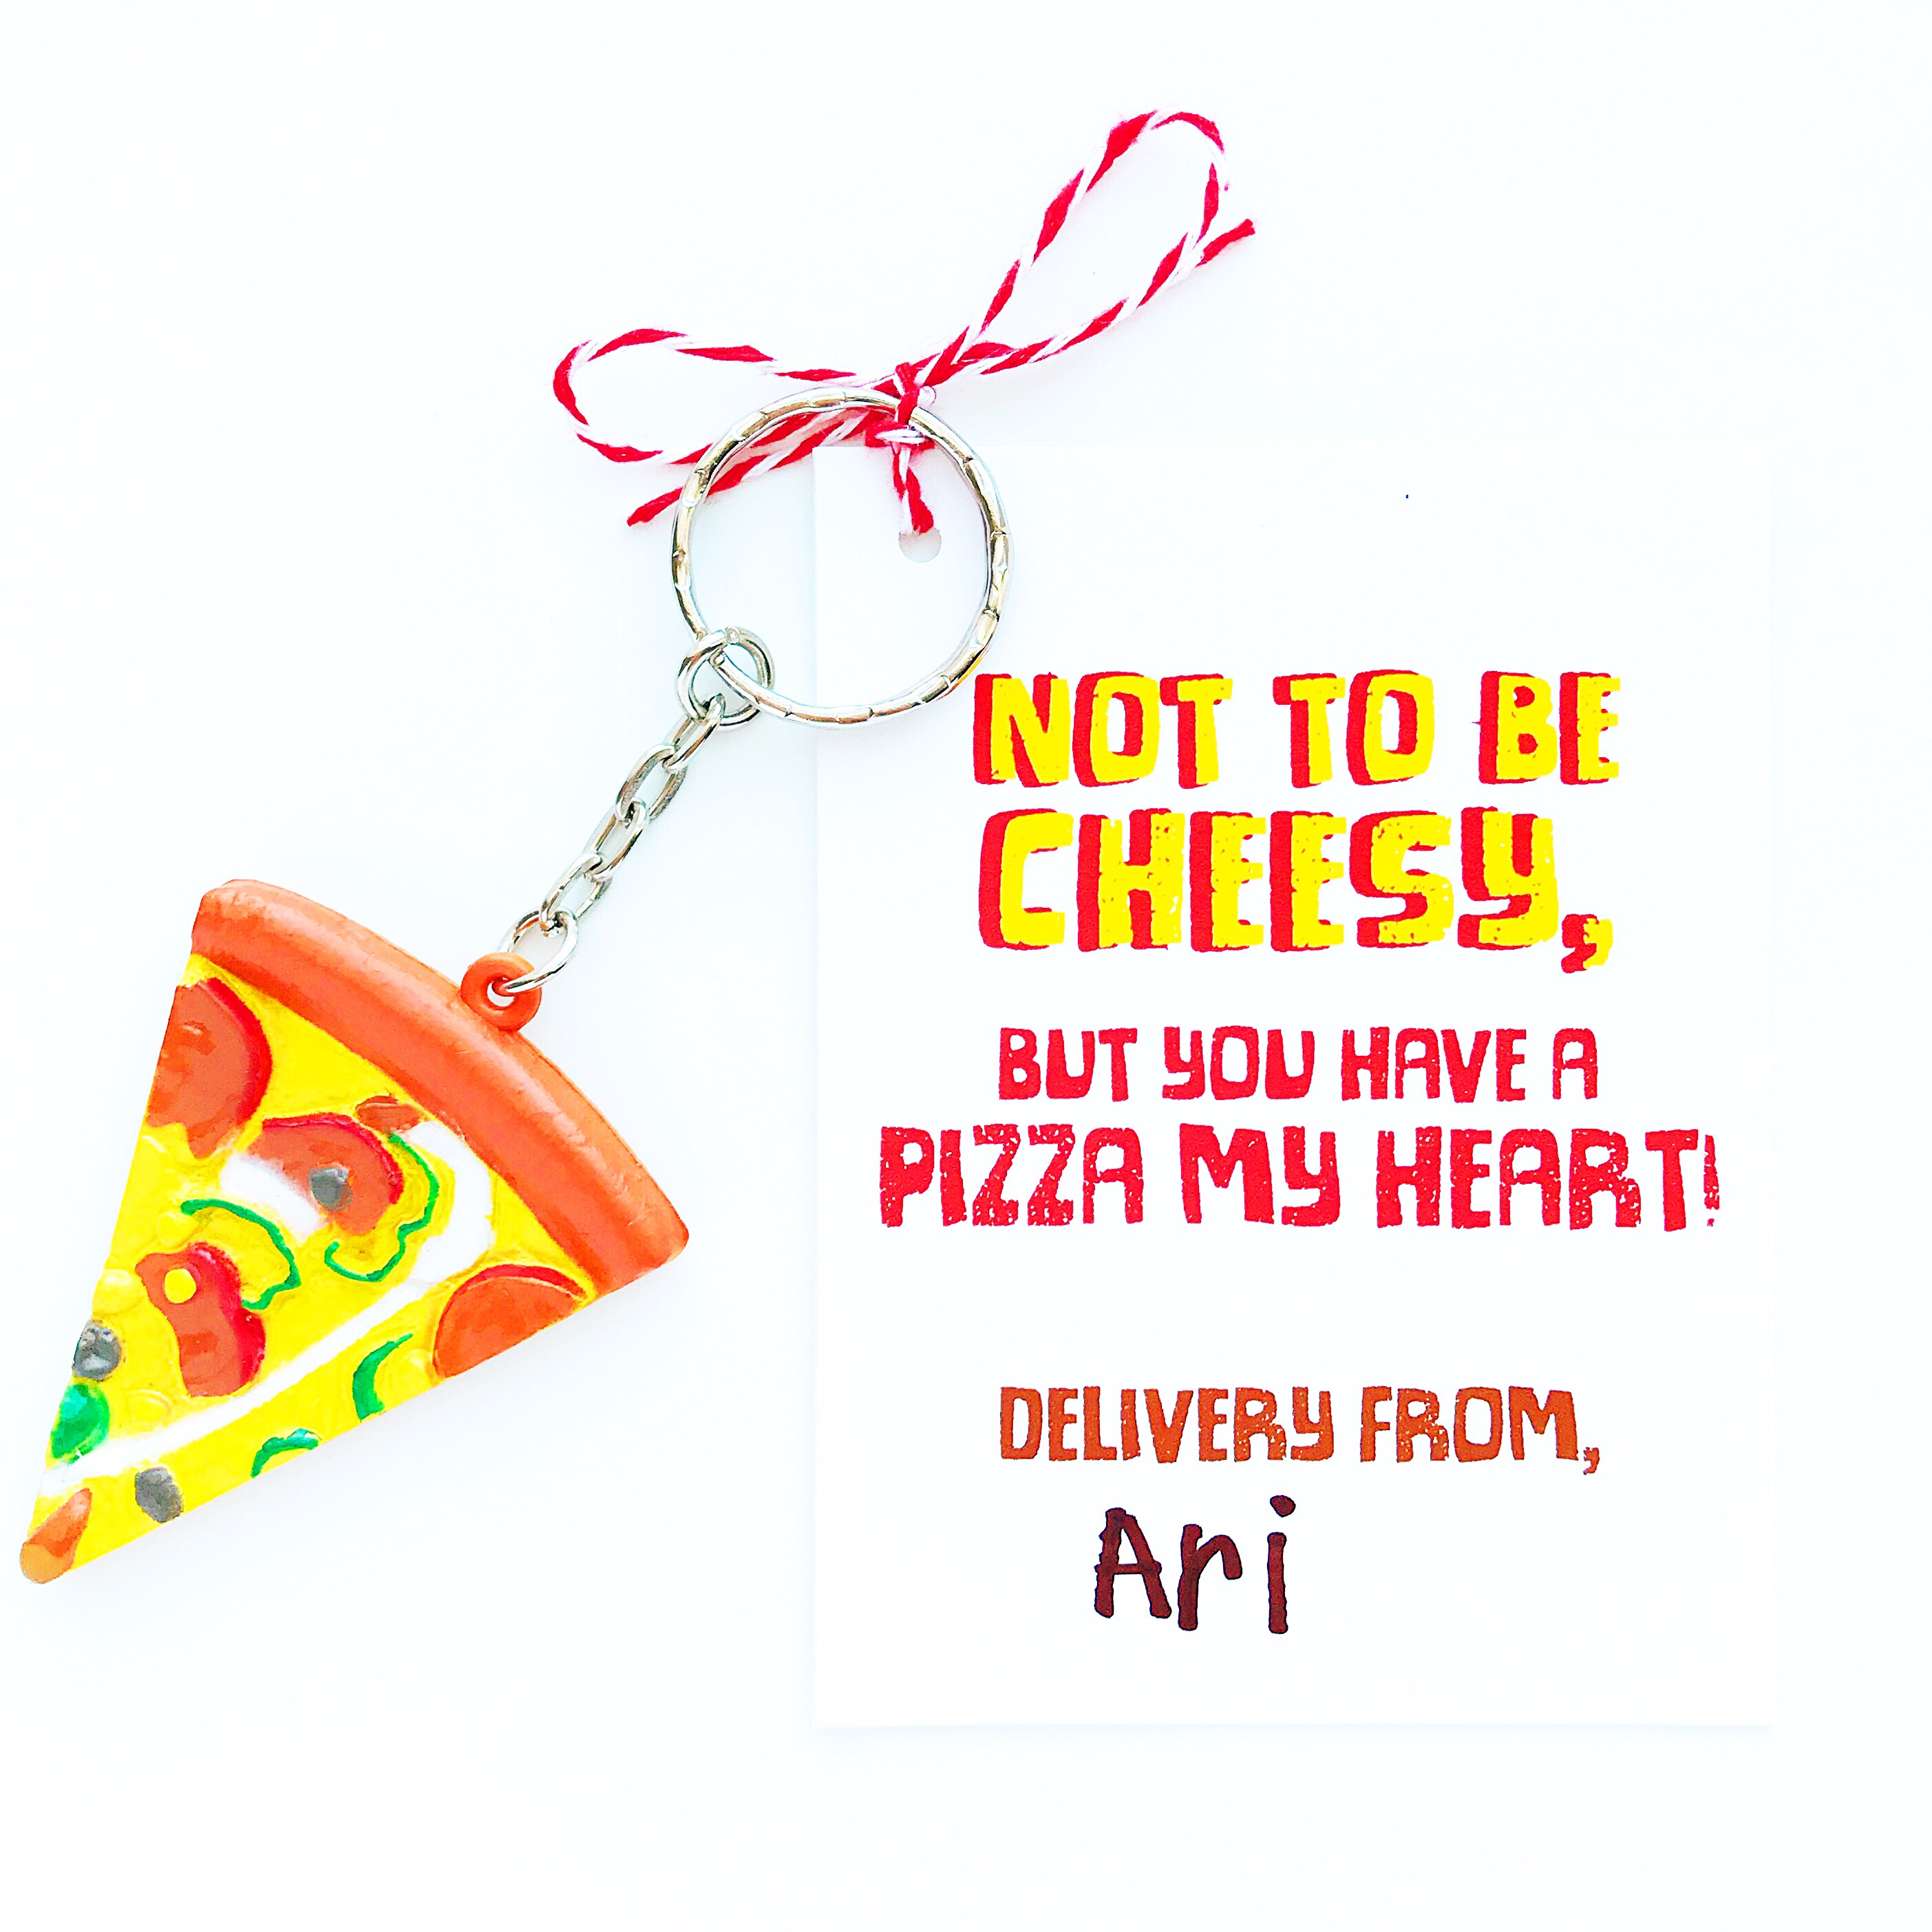 photograph about Valentines Free Printable called PIZZA MY Middle VALENTINE Totally free PRINTABLE